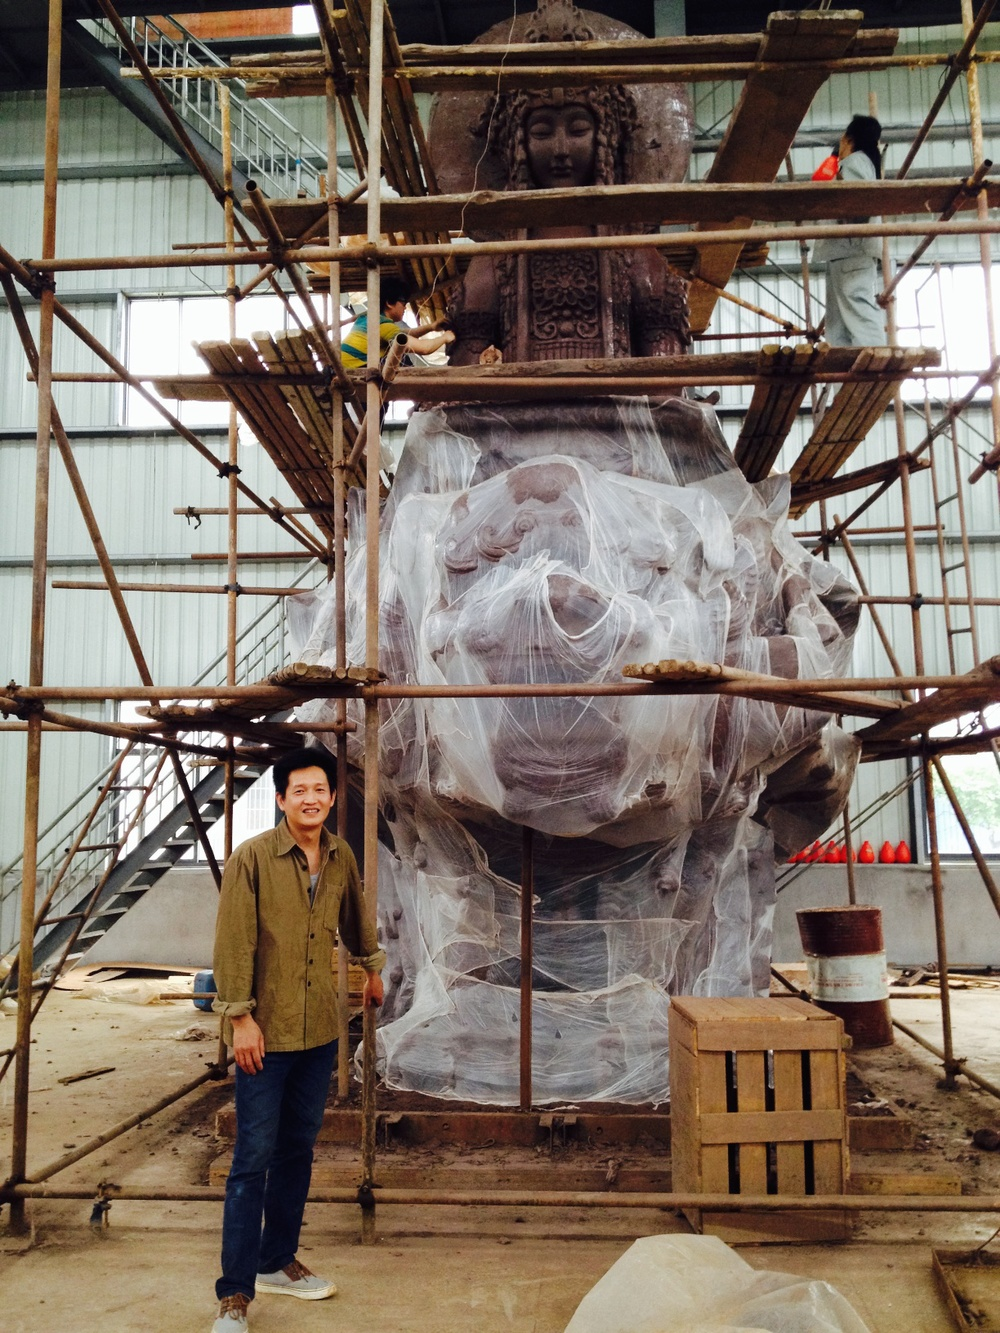 The Enlarging Department, where they are scaling up this piece in clay, getting it ready for molding and casting.  TQ Art Foundry, China.